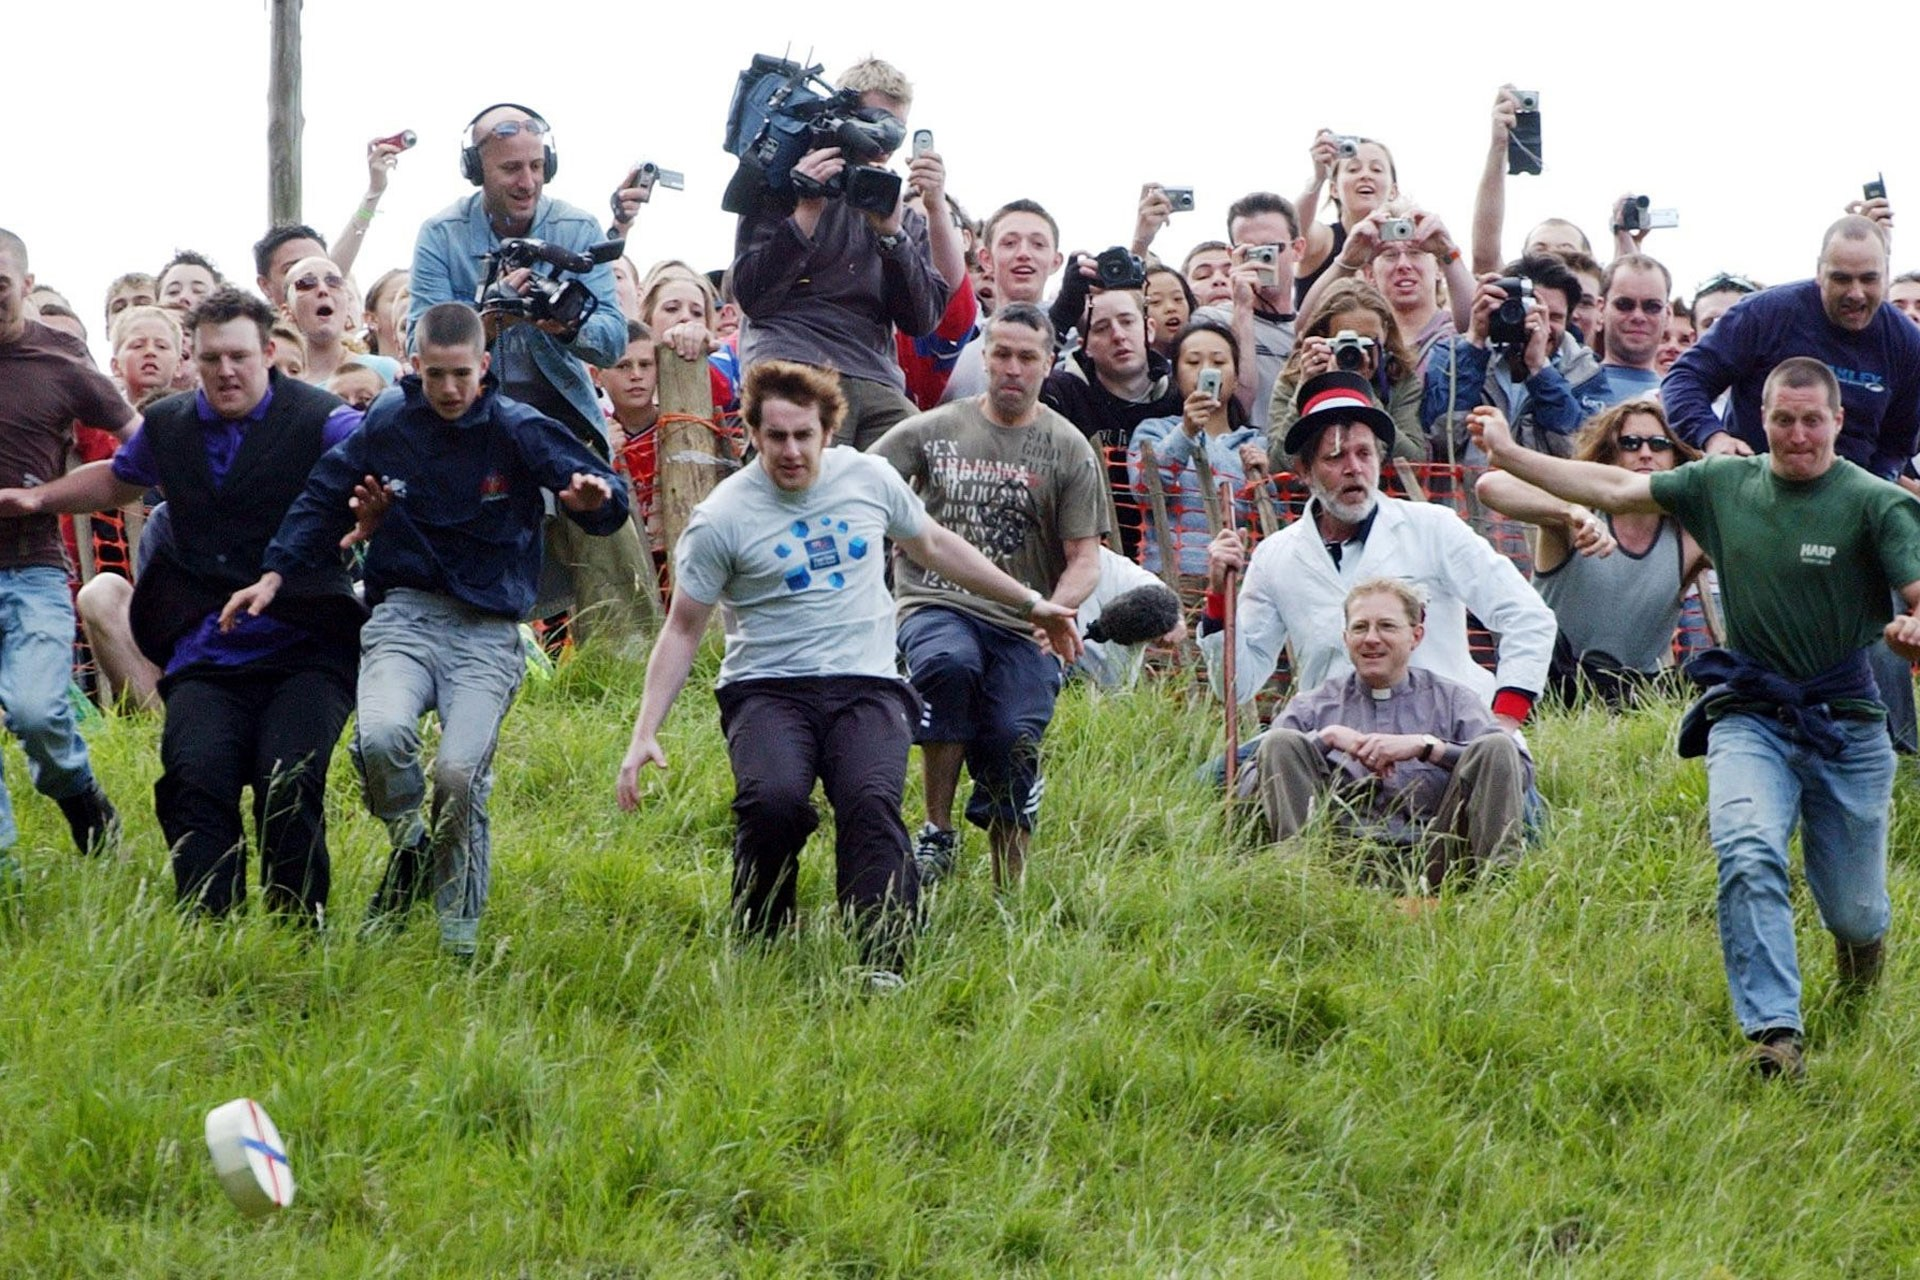 worlds quirkiest events cheese rolling